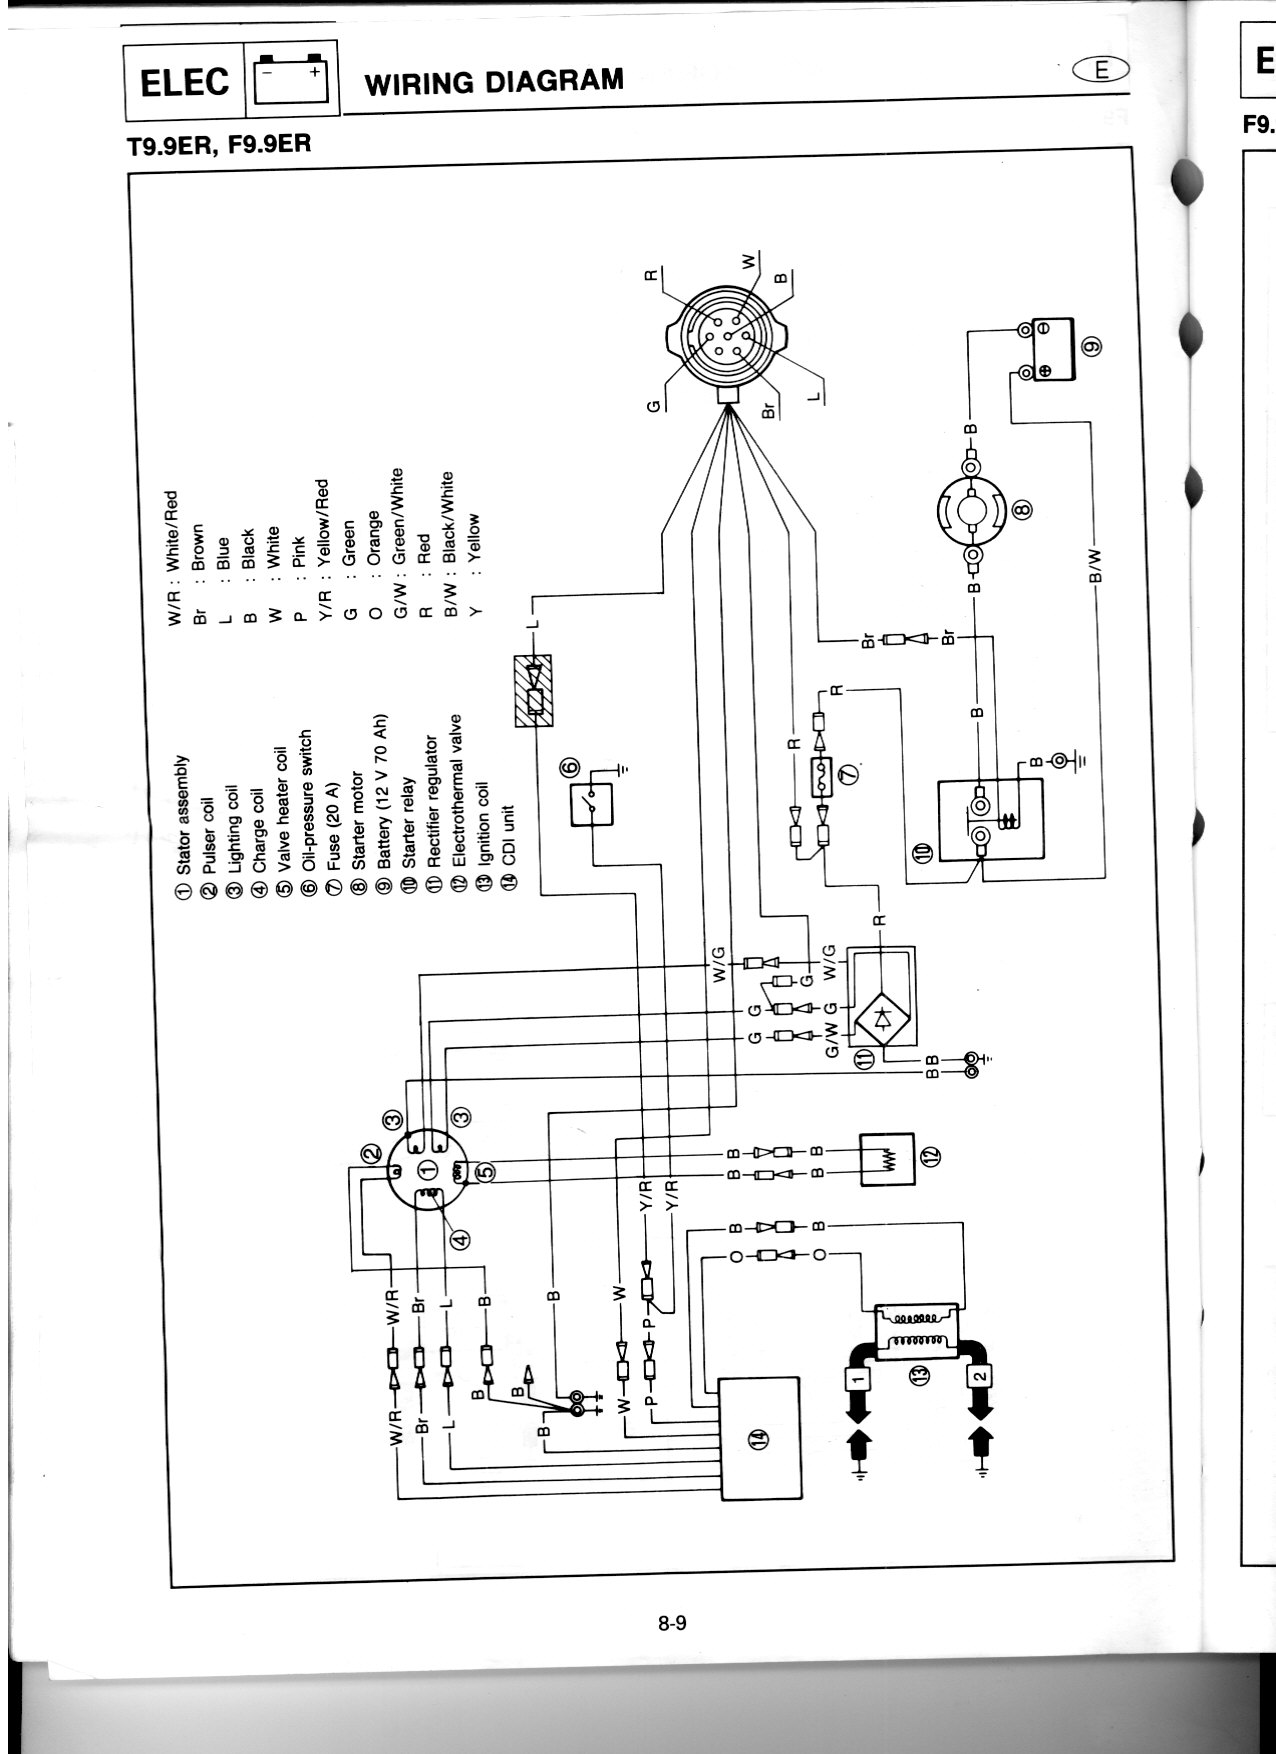 2016 Yamaha Yz 9 Wiring Diagram : 31 Wiring Diagram Images